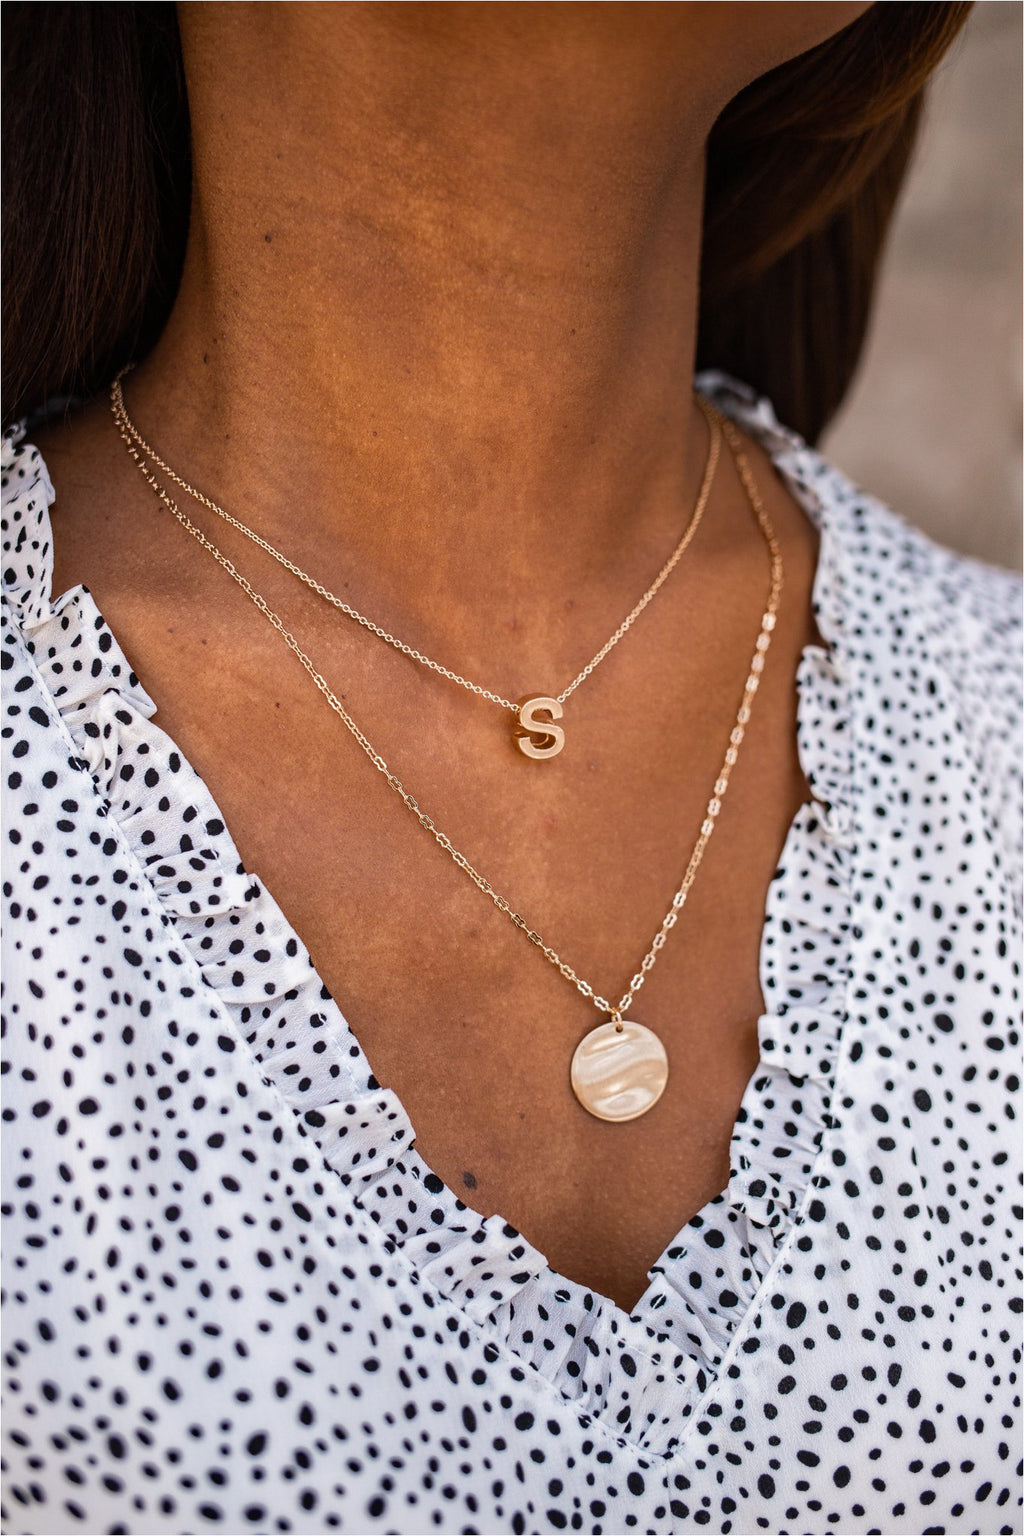 Initial and Disc Charm Necklace - BluePeppermint Boutique